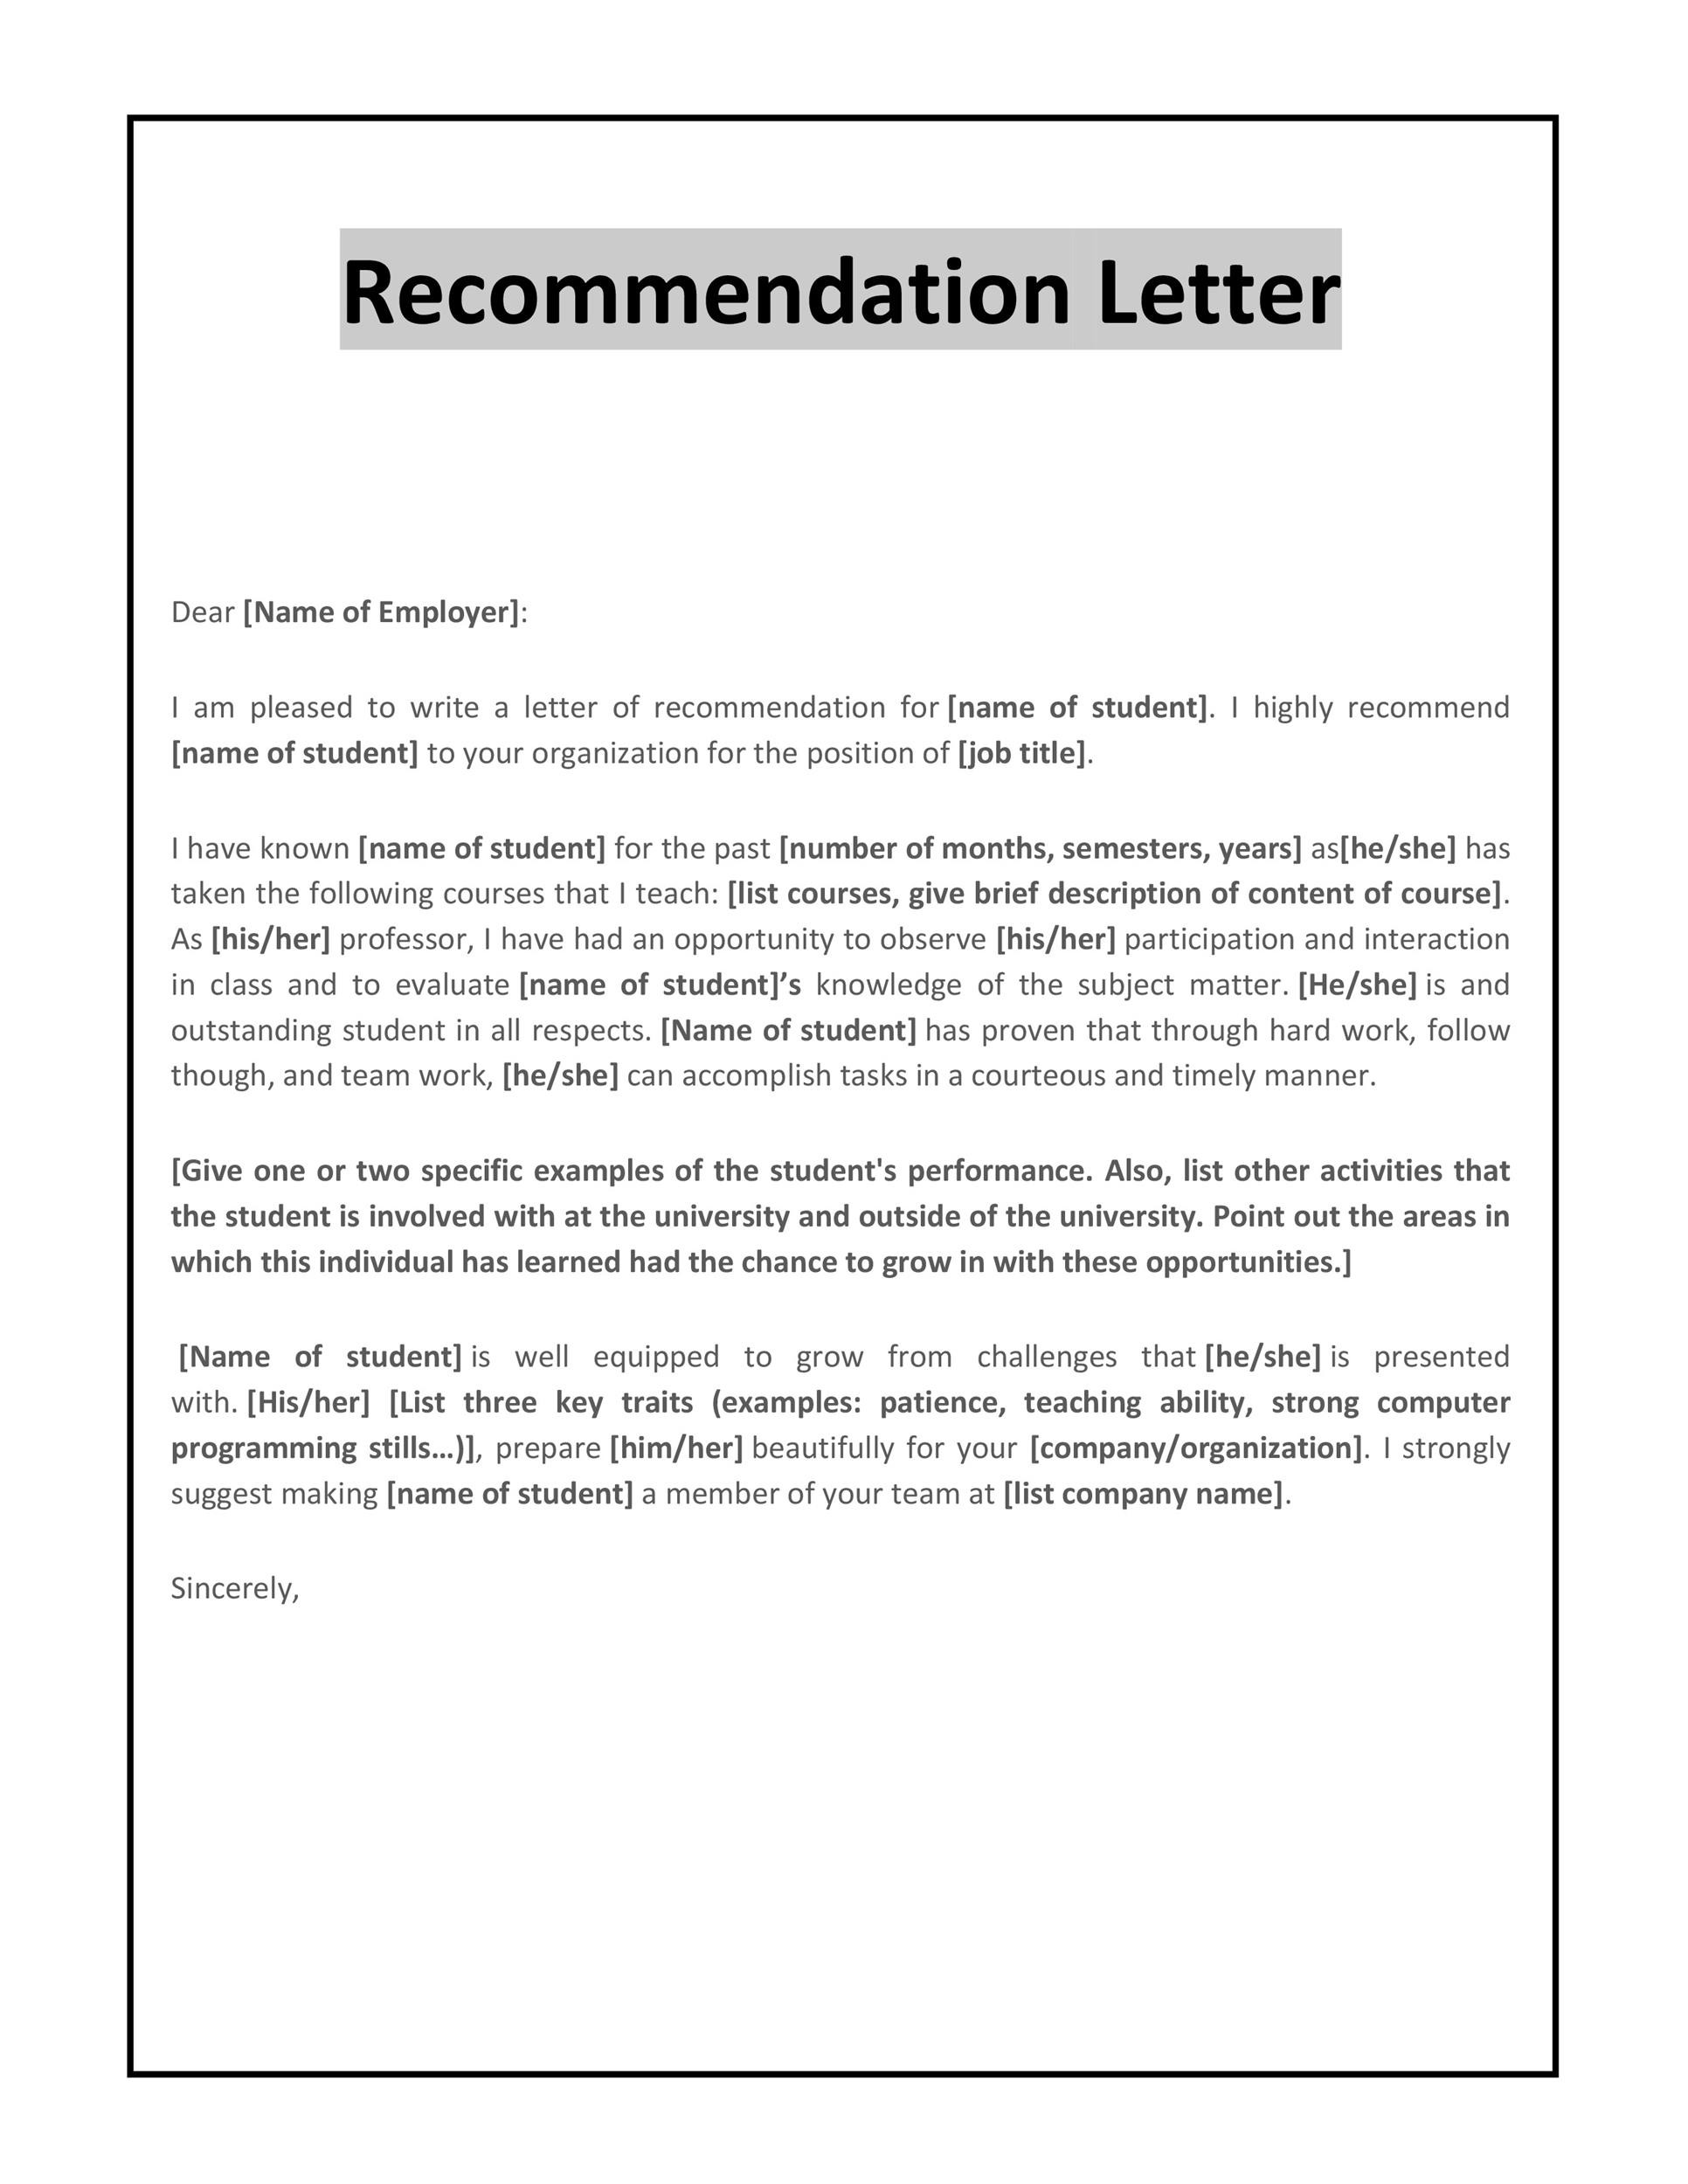 43 free letter of recommendation templates samples printable letter of recommendation 29 thecheapjerseys Gallery